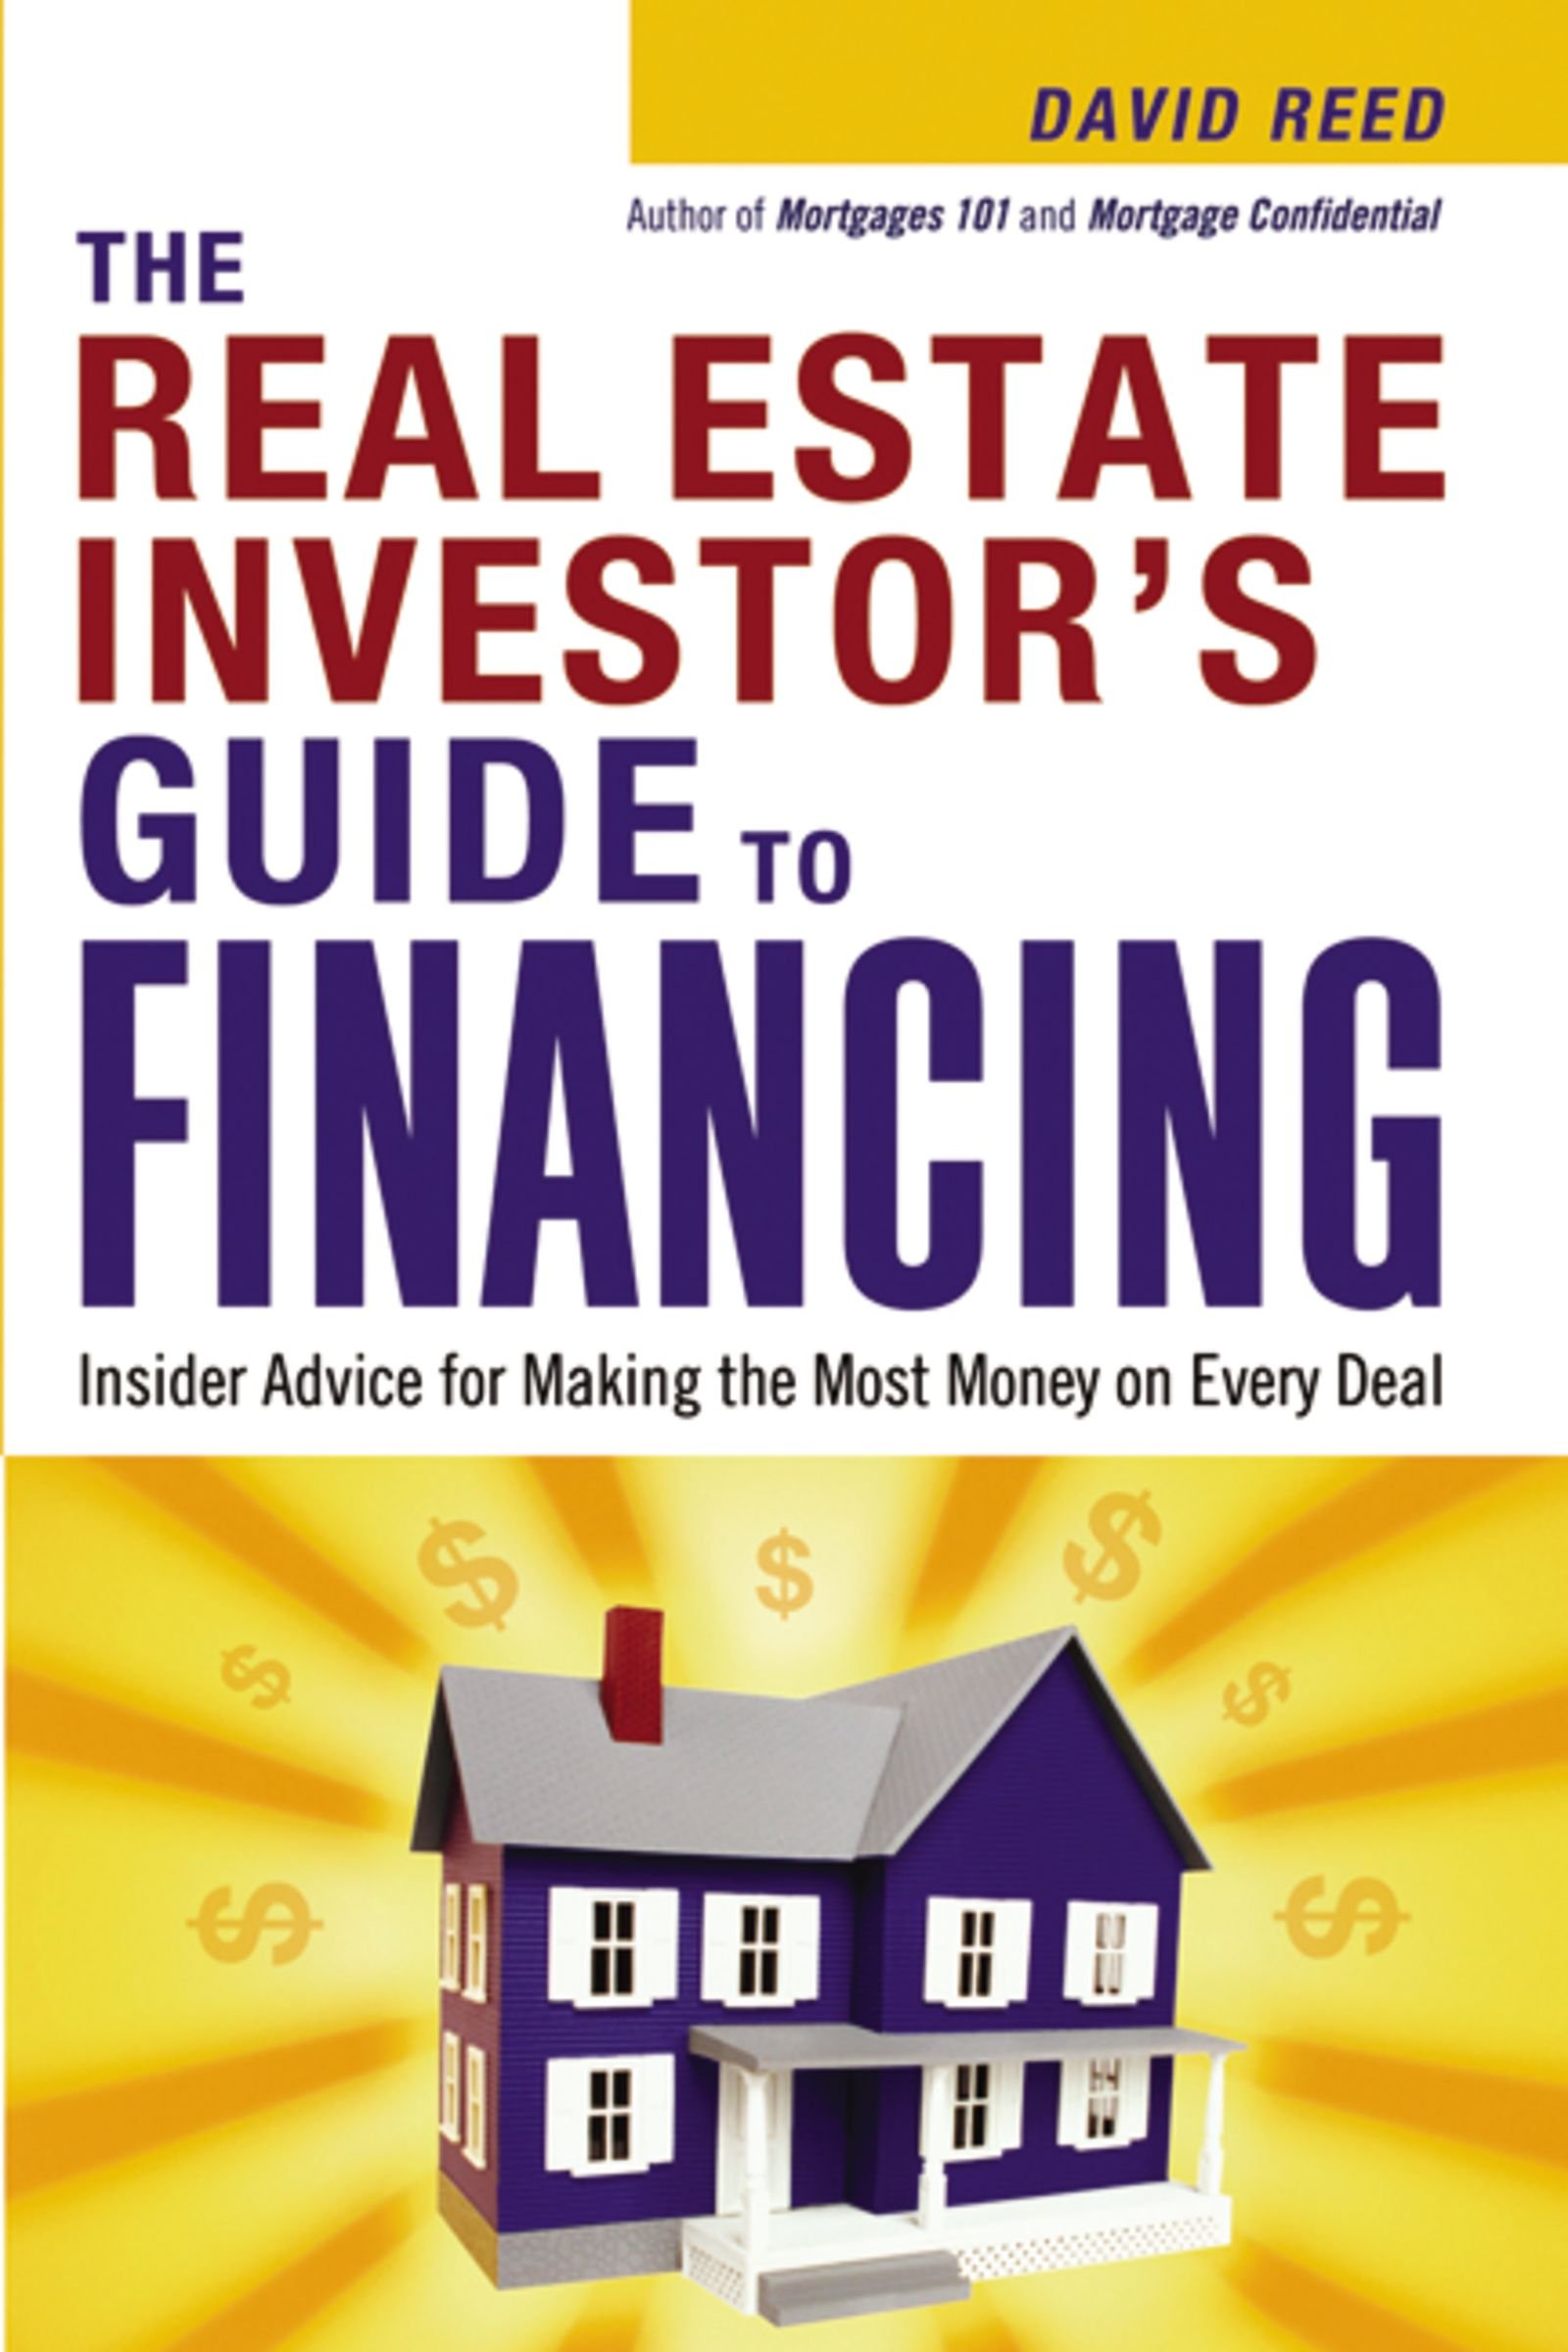 The Real Estate Investor's Guide to Financing: Insider Advice for Making  the Most Money on Every Deal: David Reed: 9780814480618: Amazon.com: Books